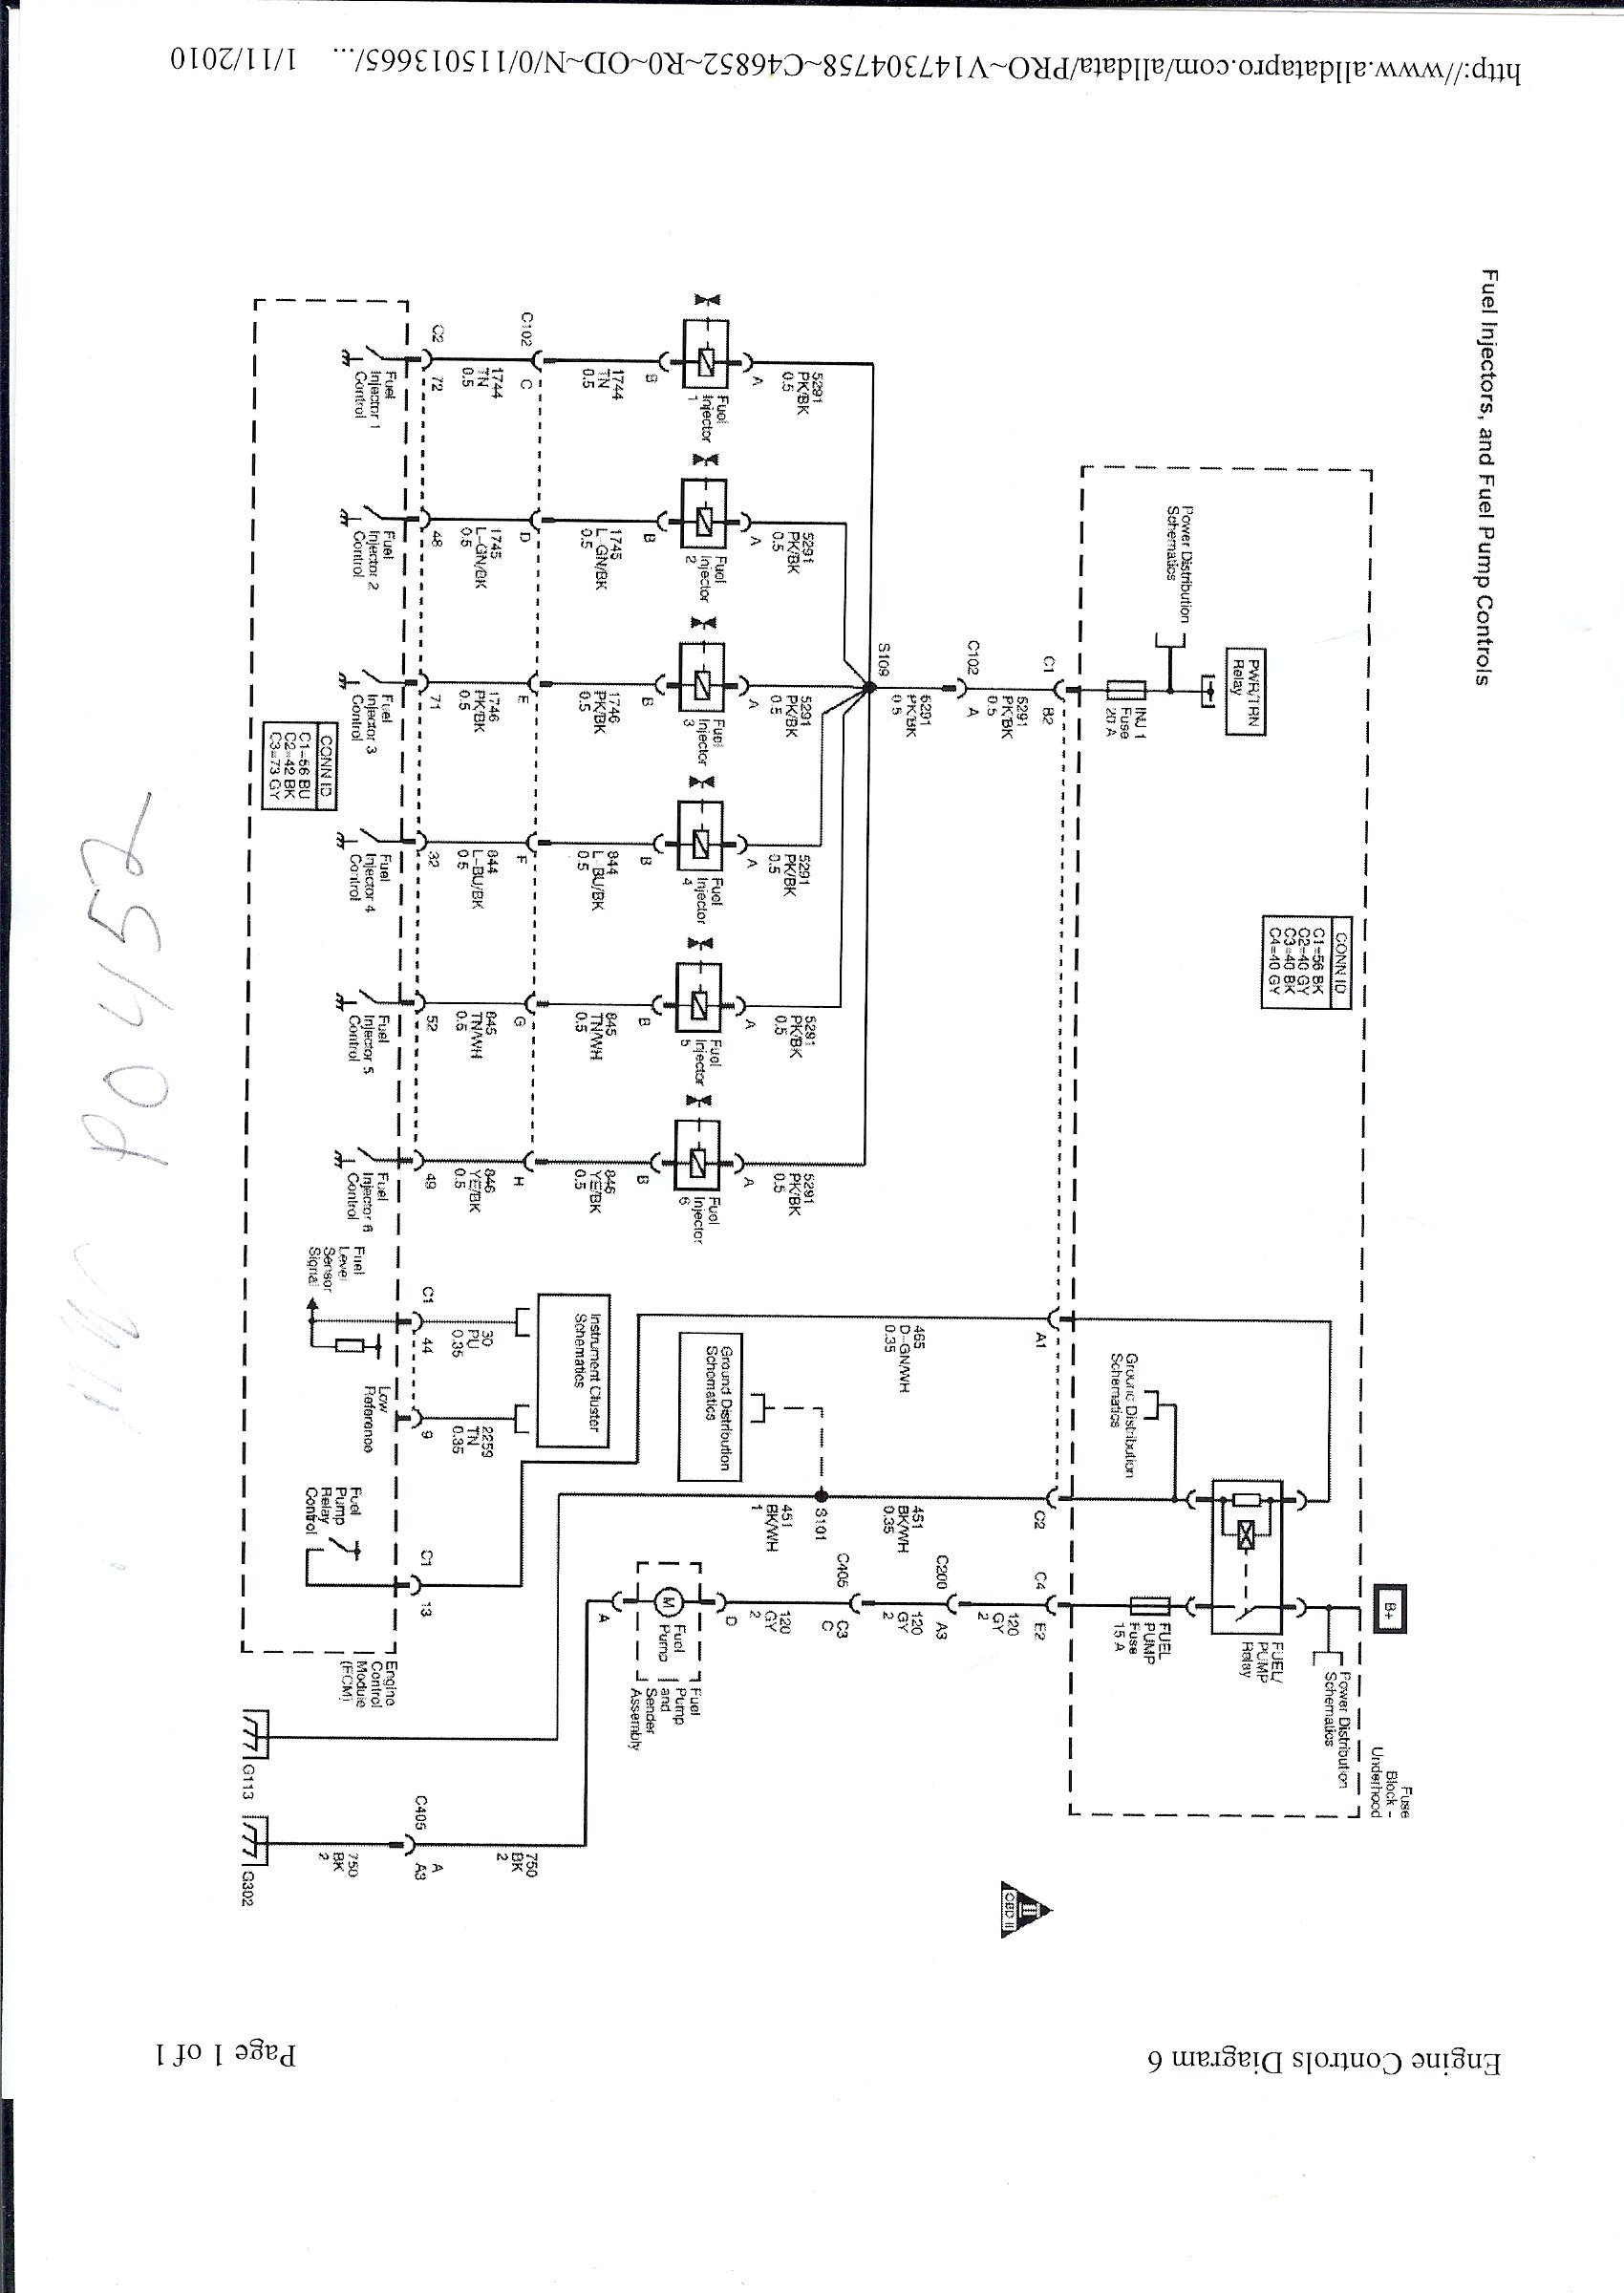 2010 01 13_020441_wiring_diagram 2006 chevy impala fuel pump went out replaced pump still will 2006 chevy cobalt fuel pump wiring diagram at gsmportal.co